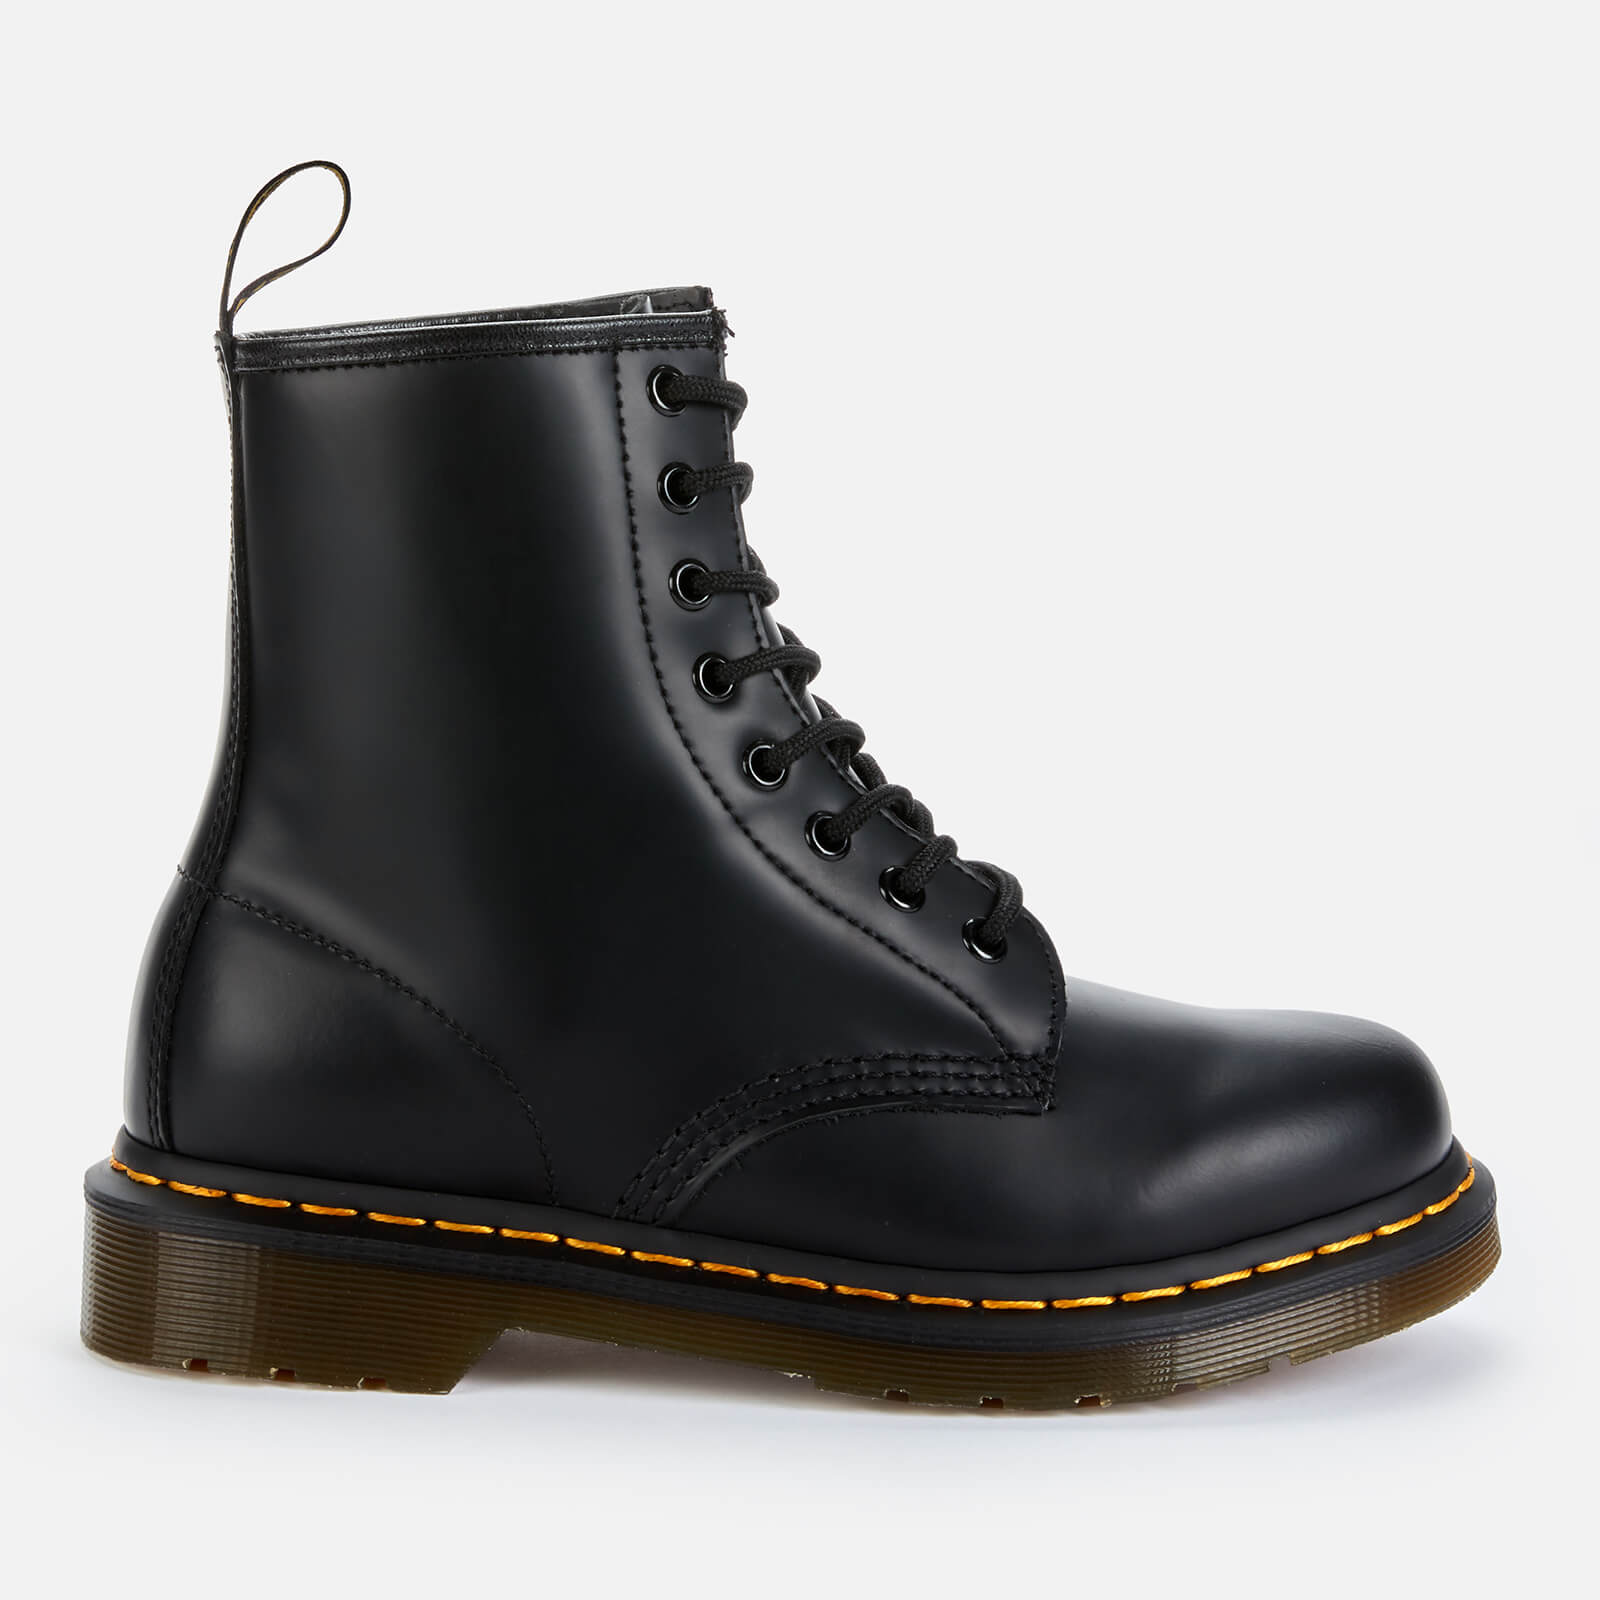 Dr.Martens 1460 Smooth 中性款英伦马丁靴